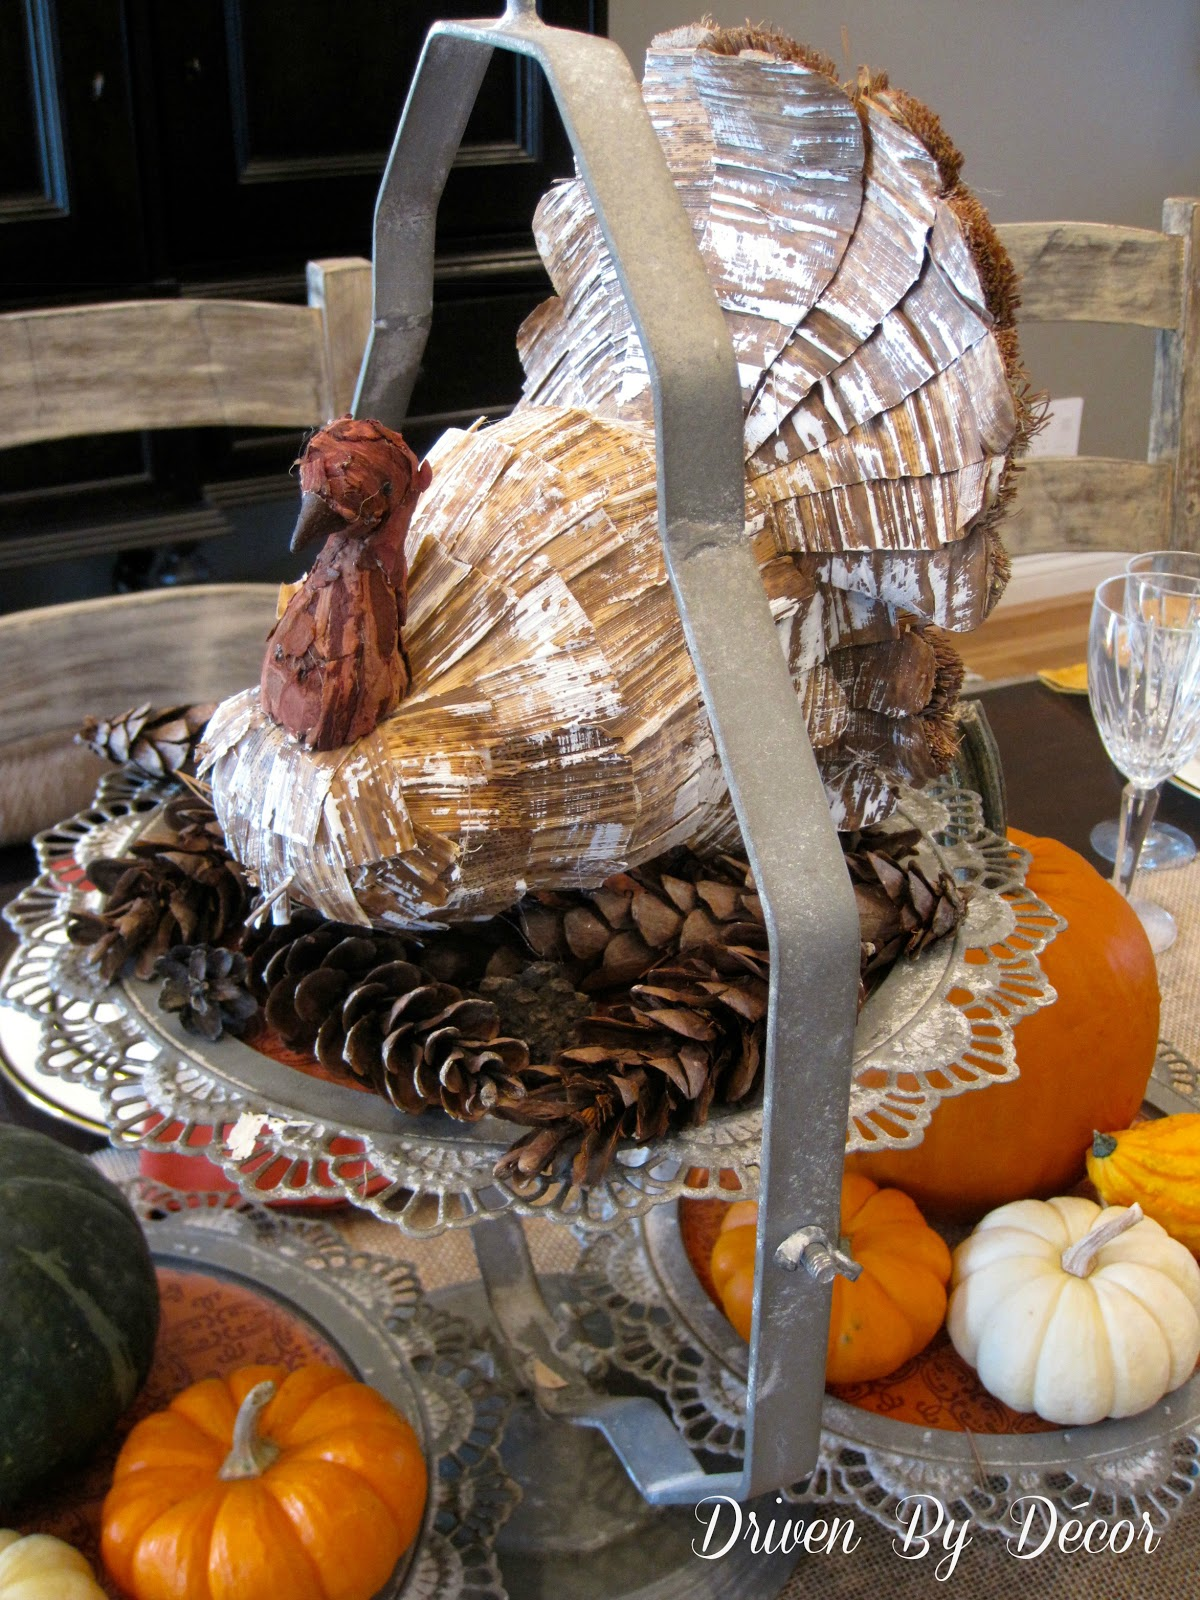 A Start to Decorating Our Thanksgiving Table